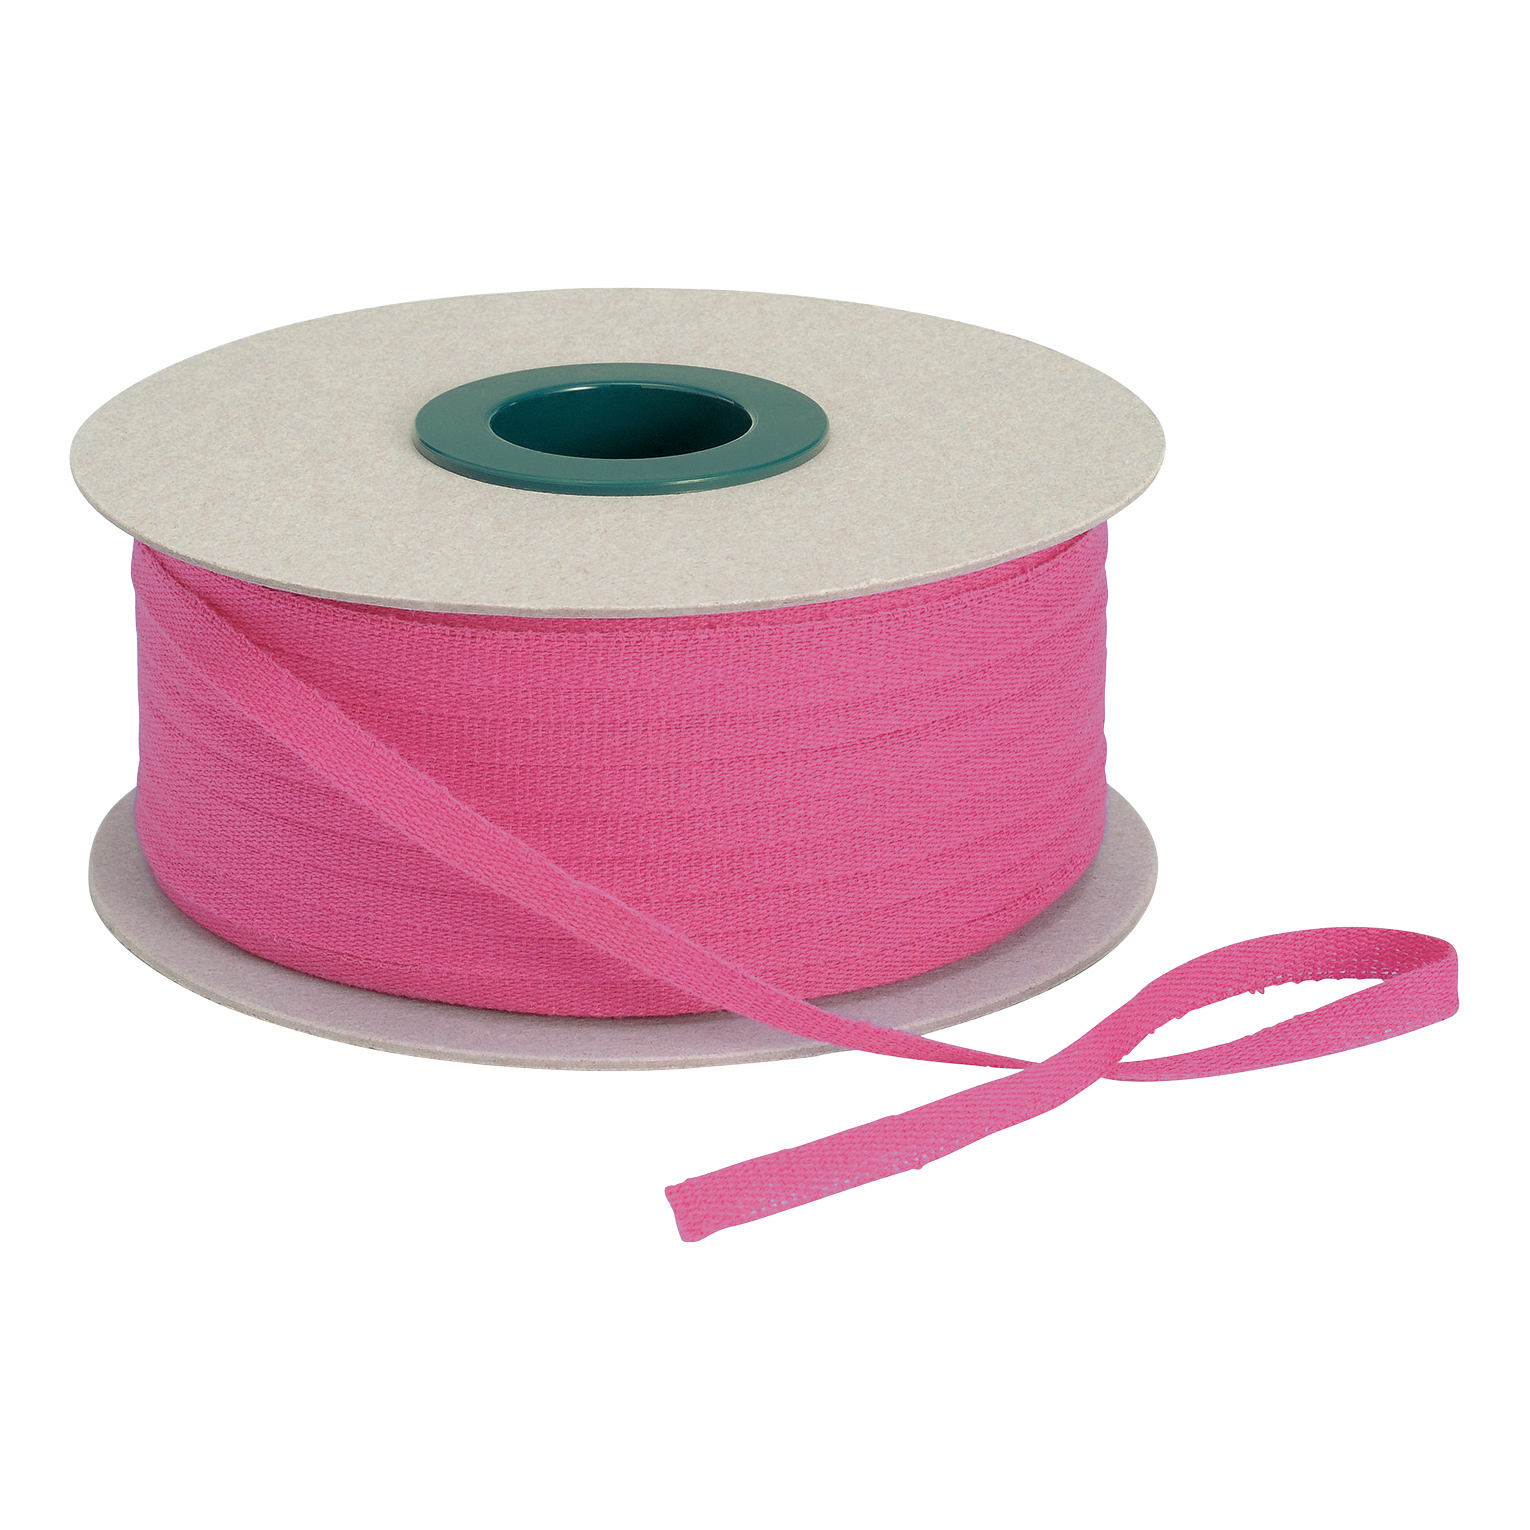 Legal Sundries 5 Star Office Legal Tape Reel 6mmx150m Pink